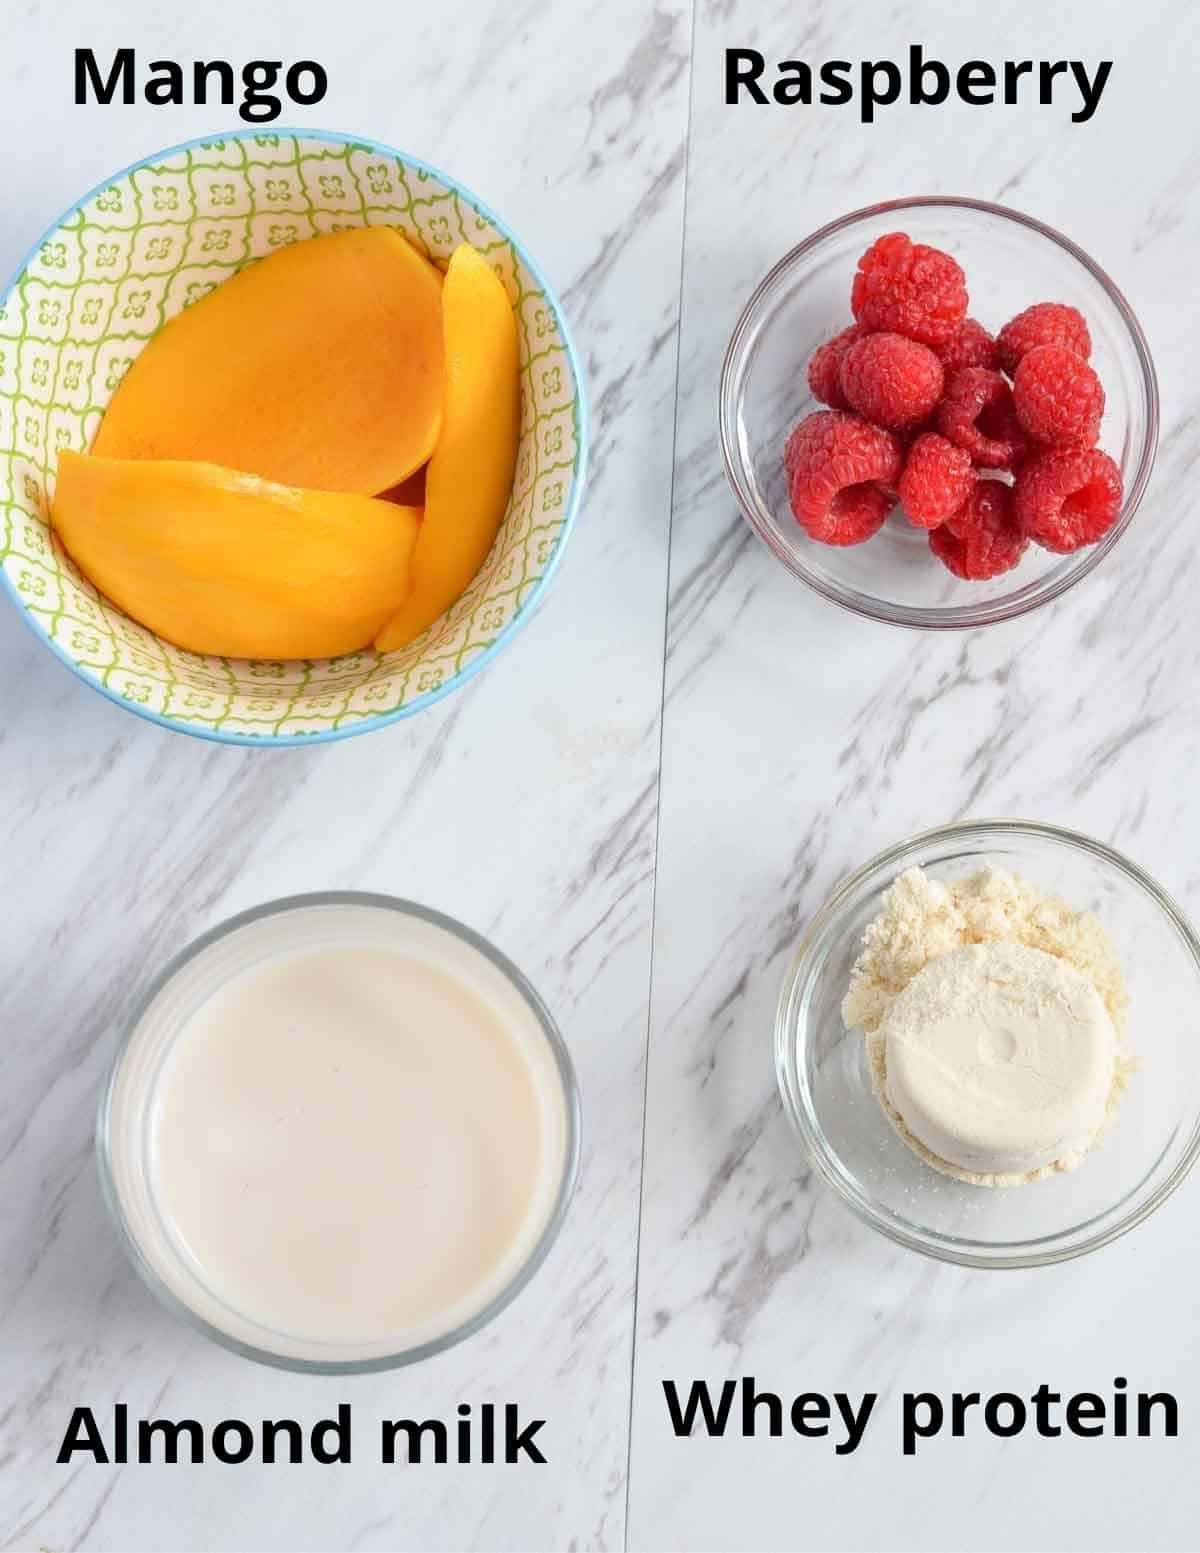 Ingredients listed to make raspberry mango smoothie